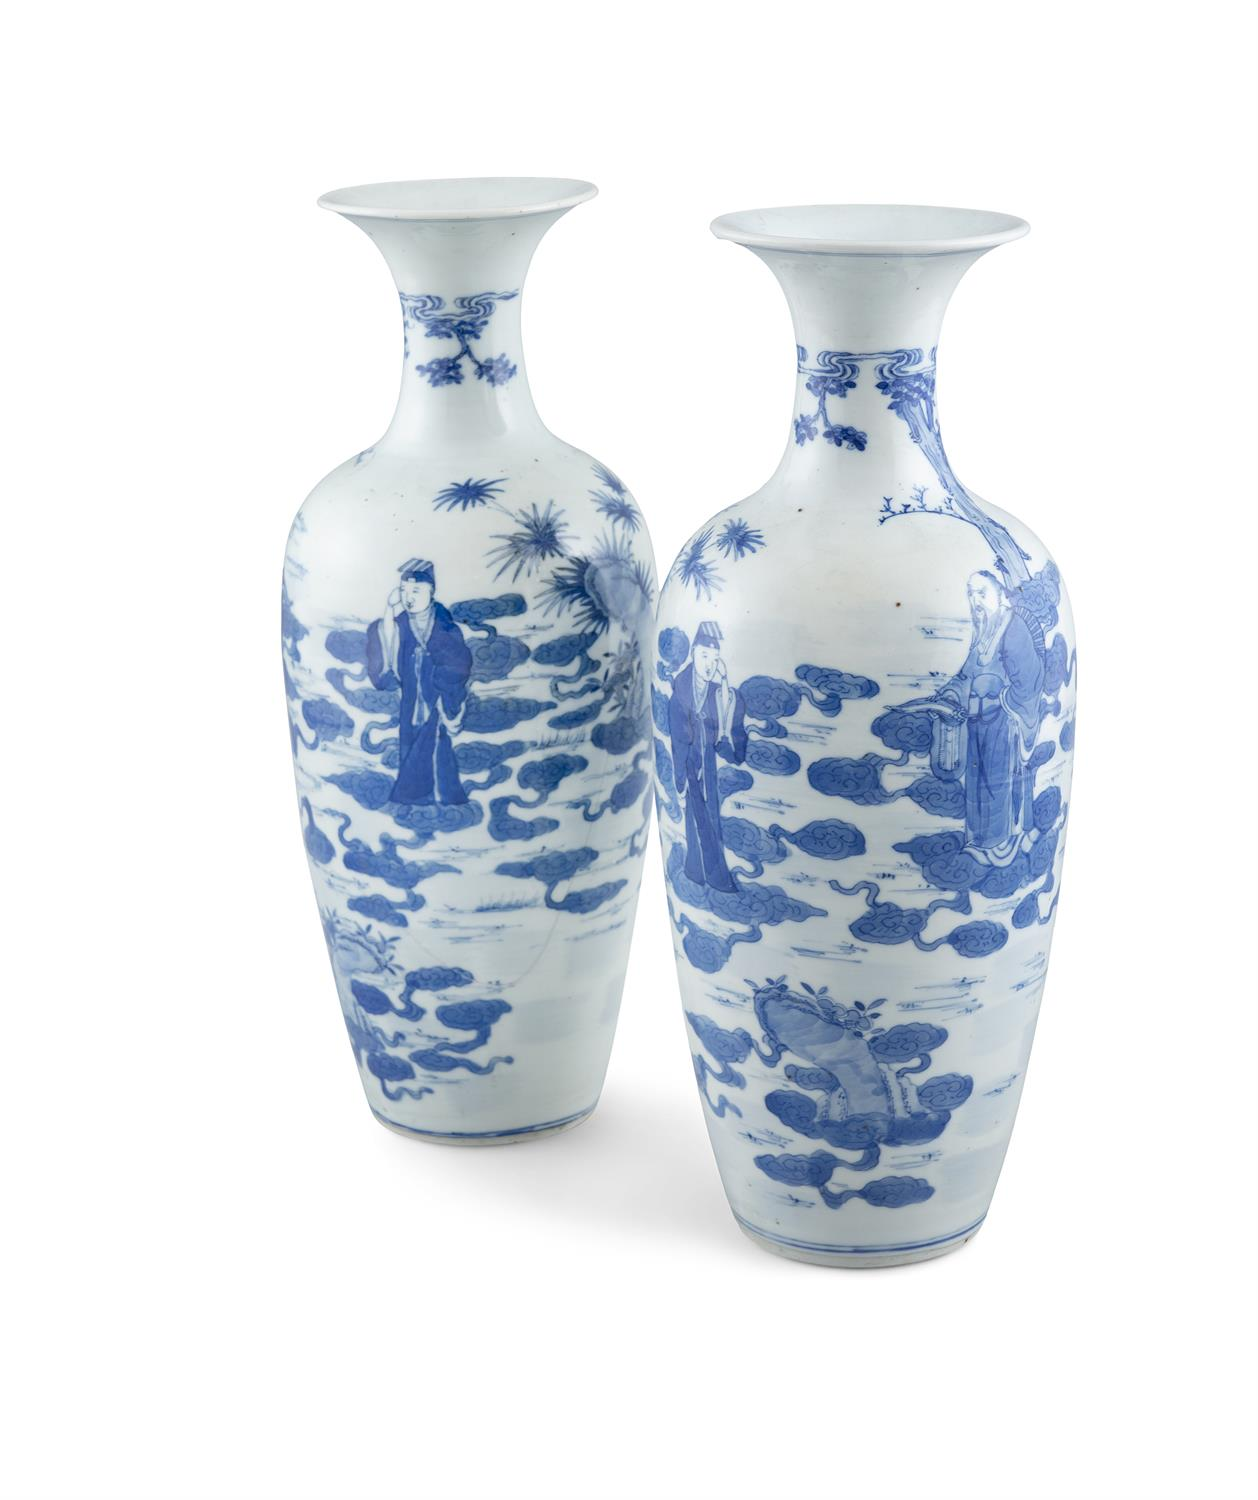 A PAIR OF CHINESE BLUE AND WHITE PORCELAIN VASES, of circular baluster urn form, 34.5cm high